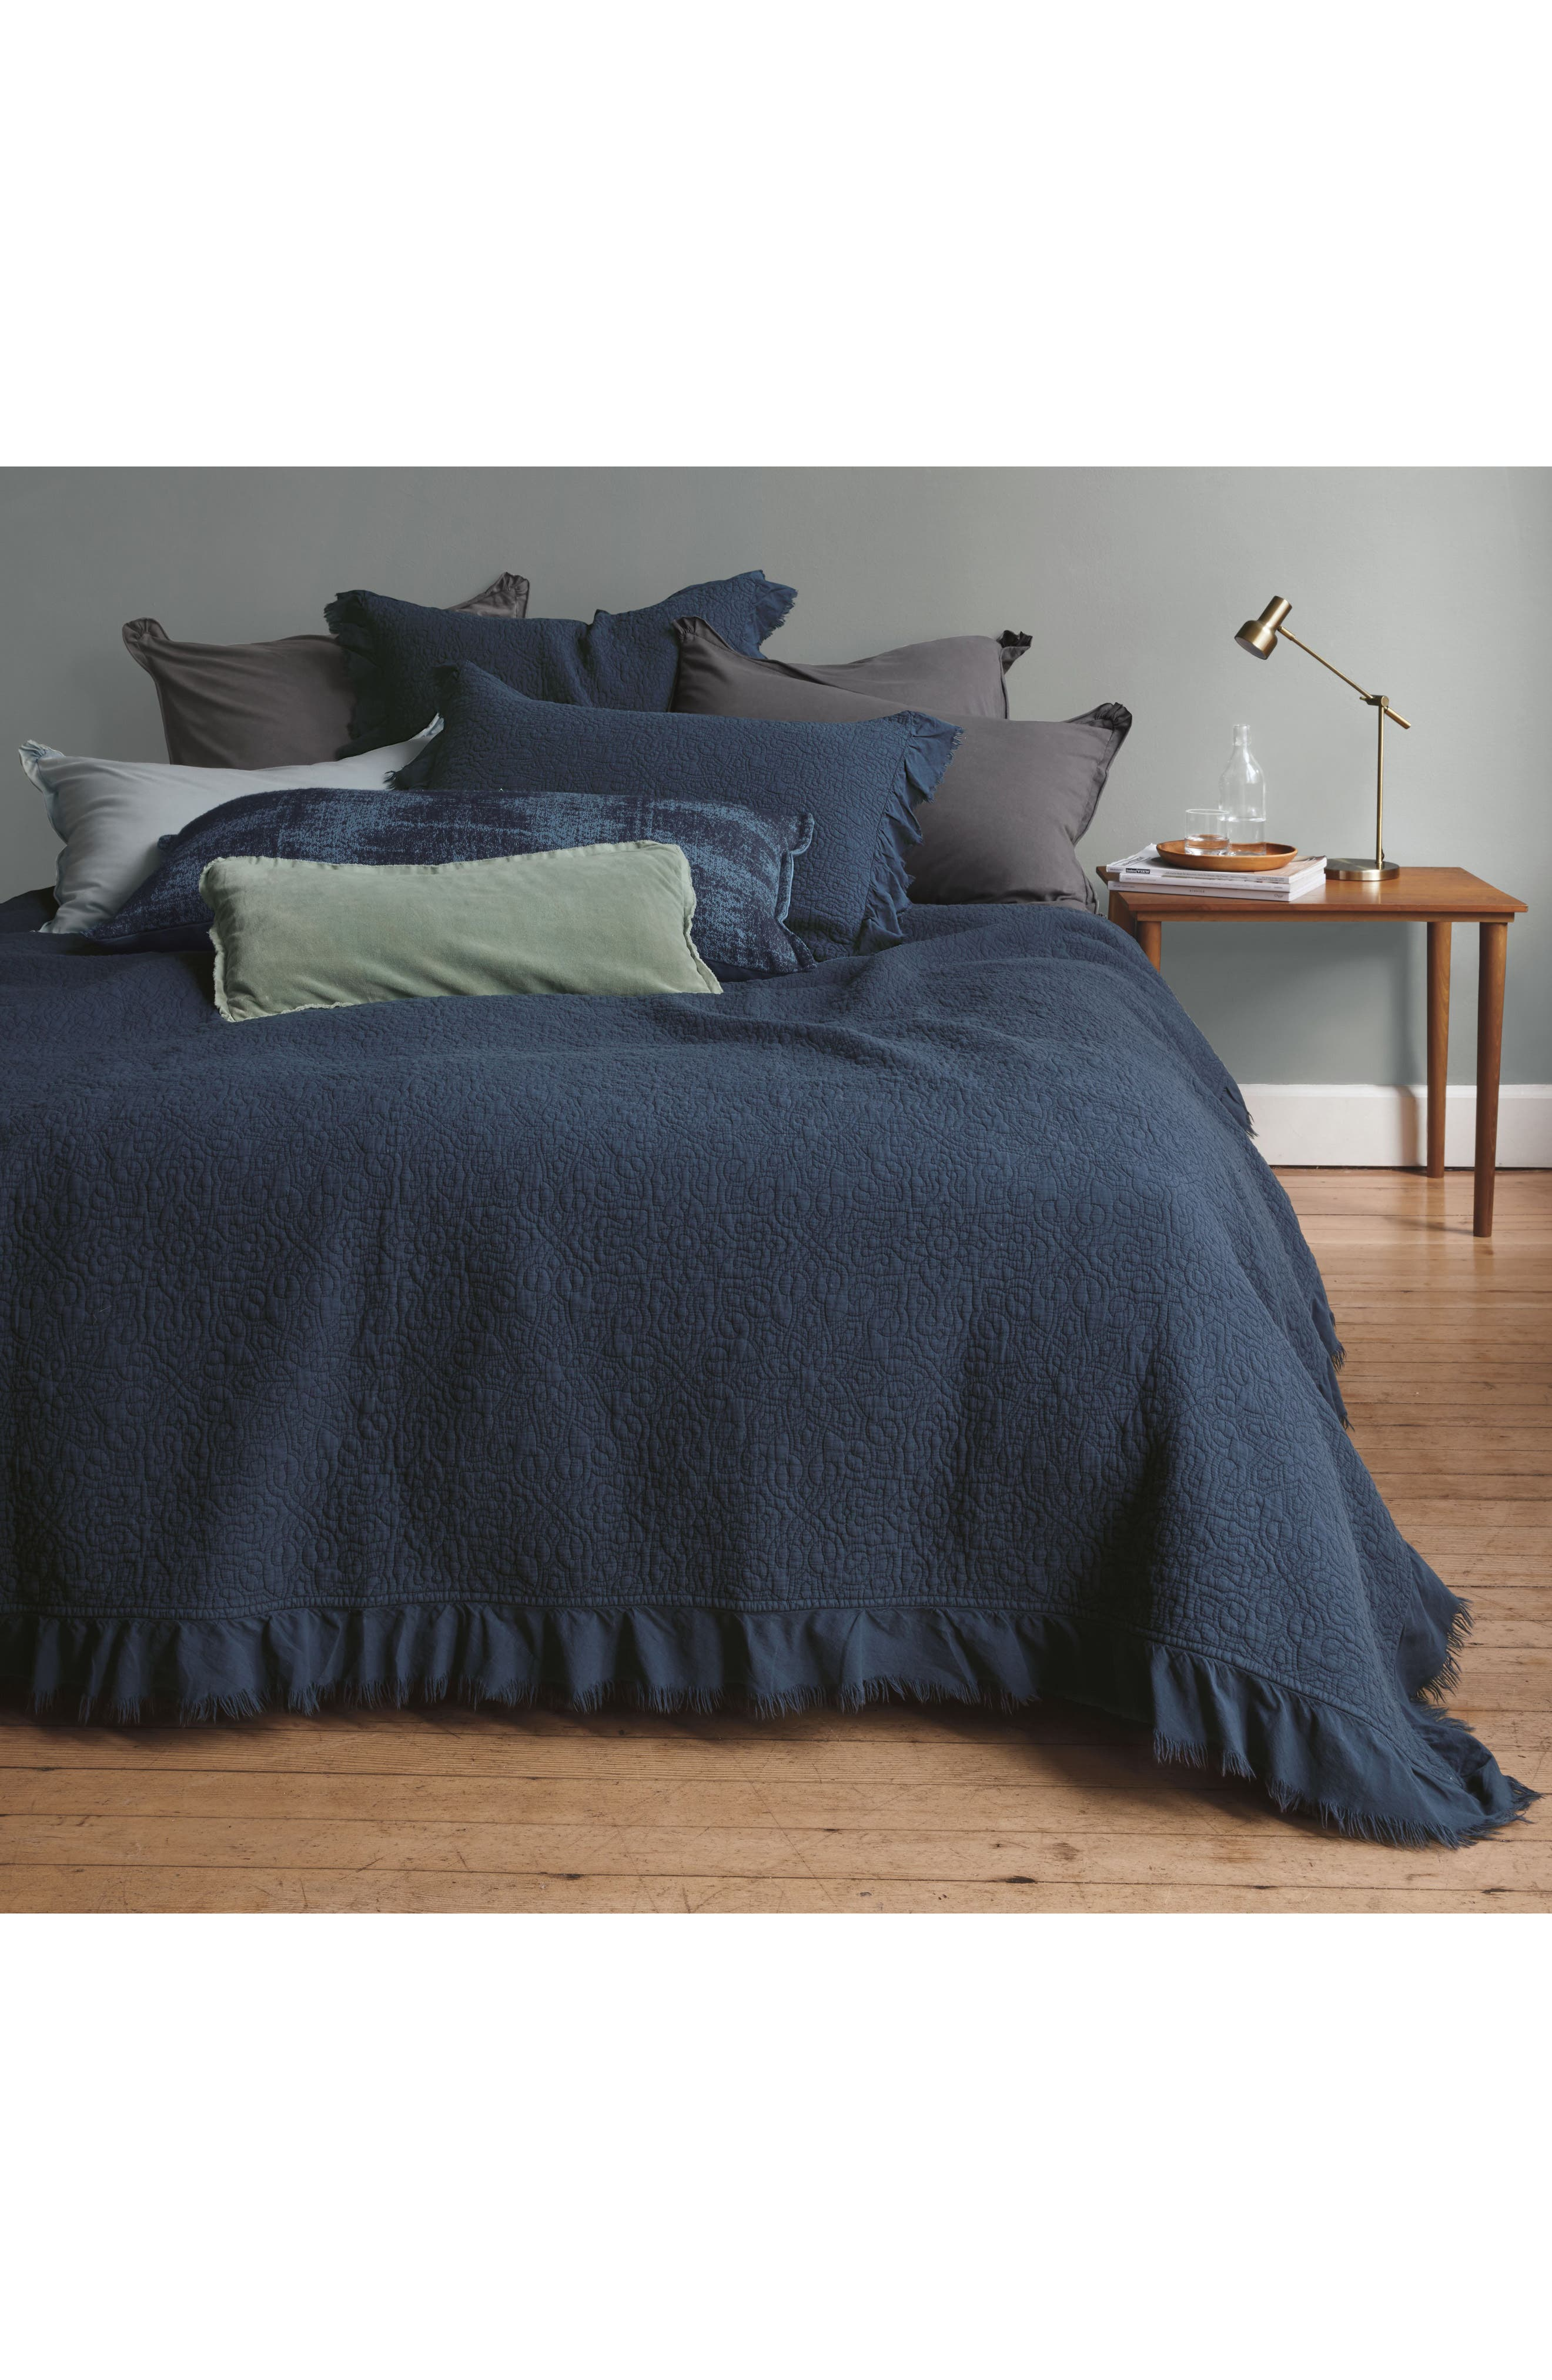 Frayed Edge Stonewash Quilt,                             Main thumbnail 1, color,                             Navy Blue